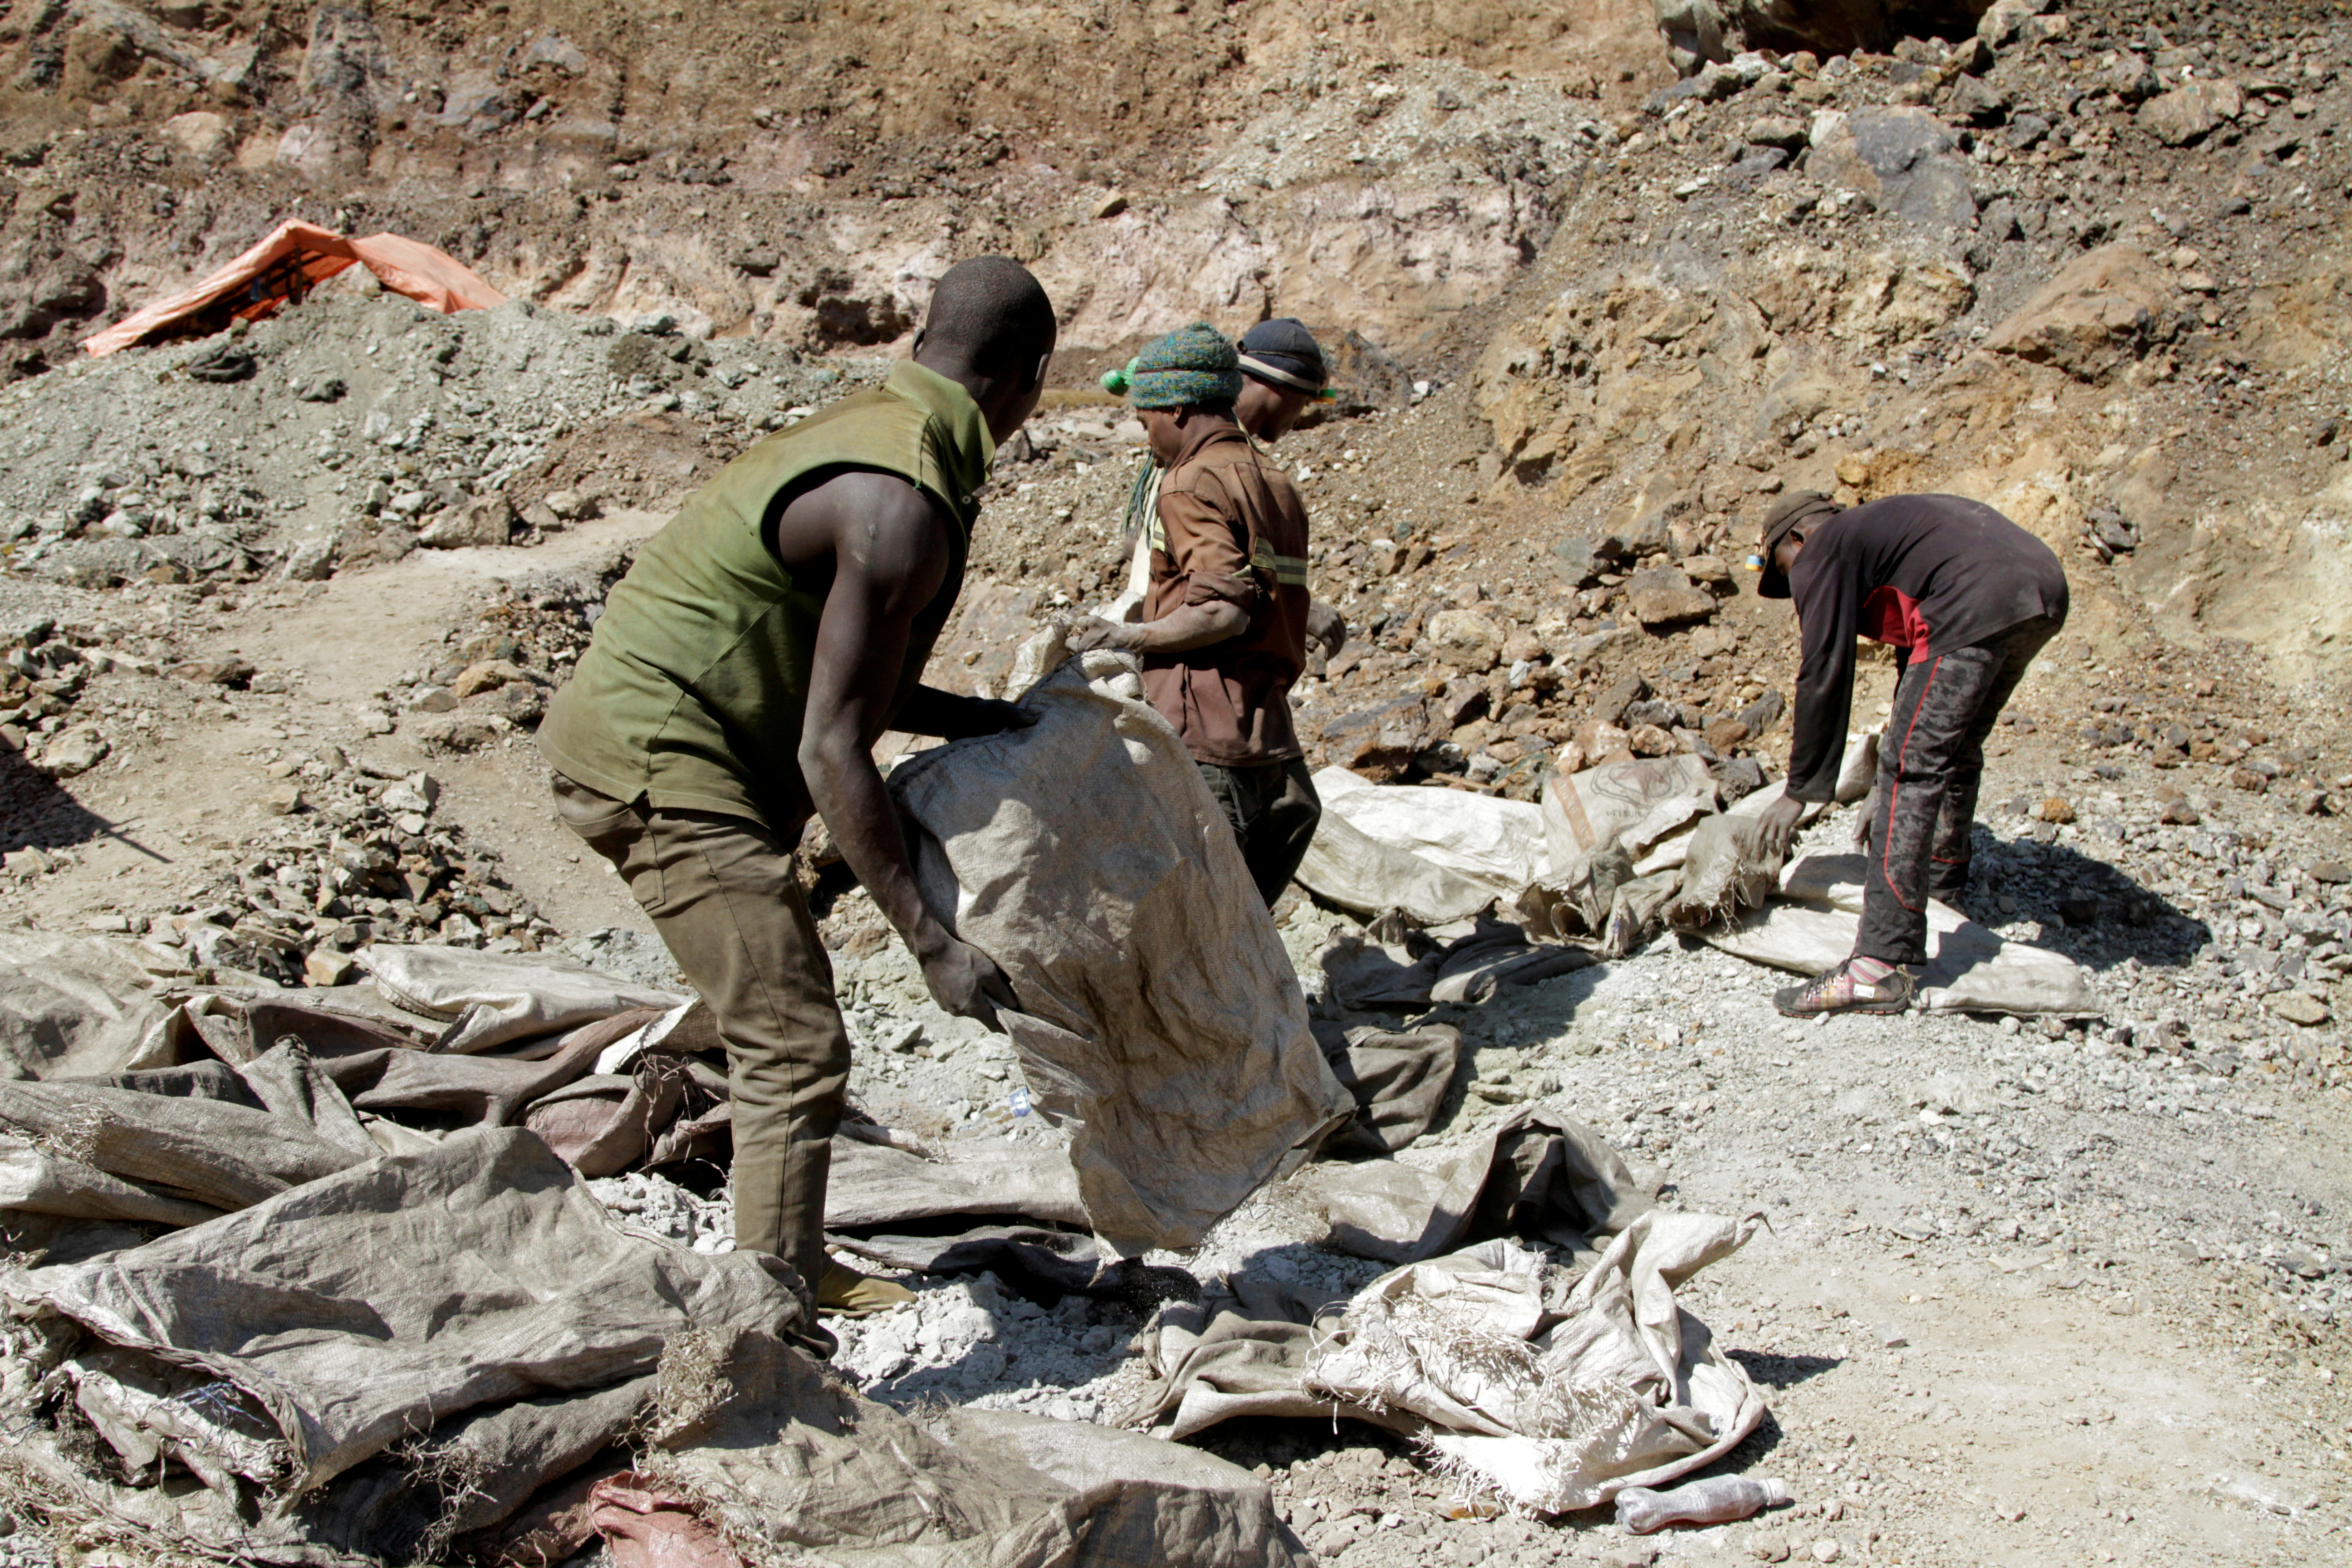 Artisanal miners work at Tilwizembe, a former industrial copper-cobalt mine, outside of Kolwezi, capital city of Lualaba Province in the south of the Democratic Republic of the Congo, June 11, 2016. REUTERS/Kenny Katombe//File Photo